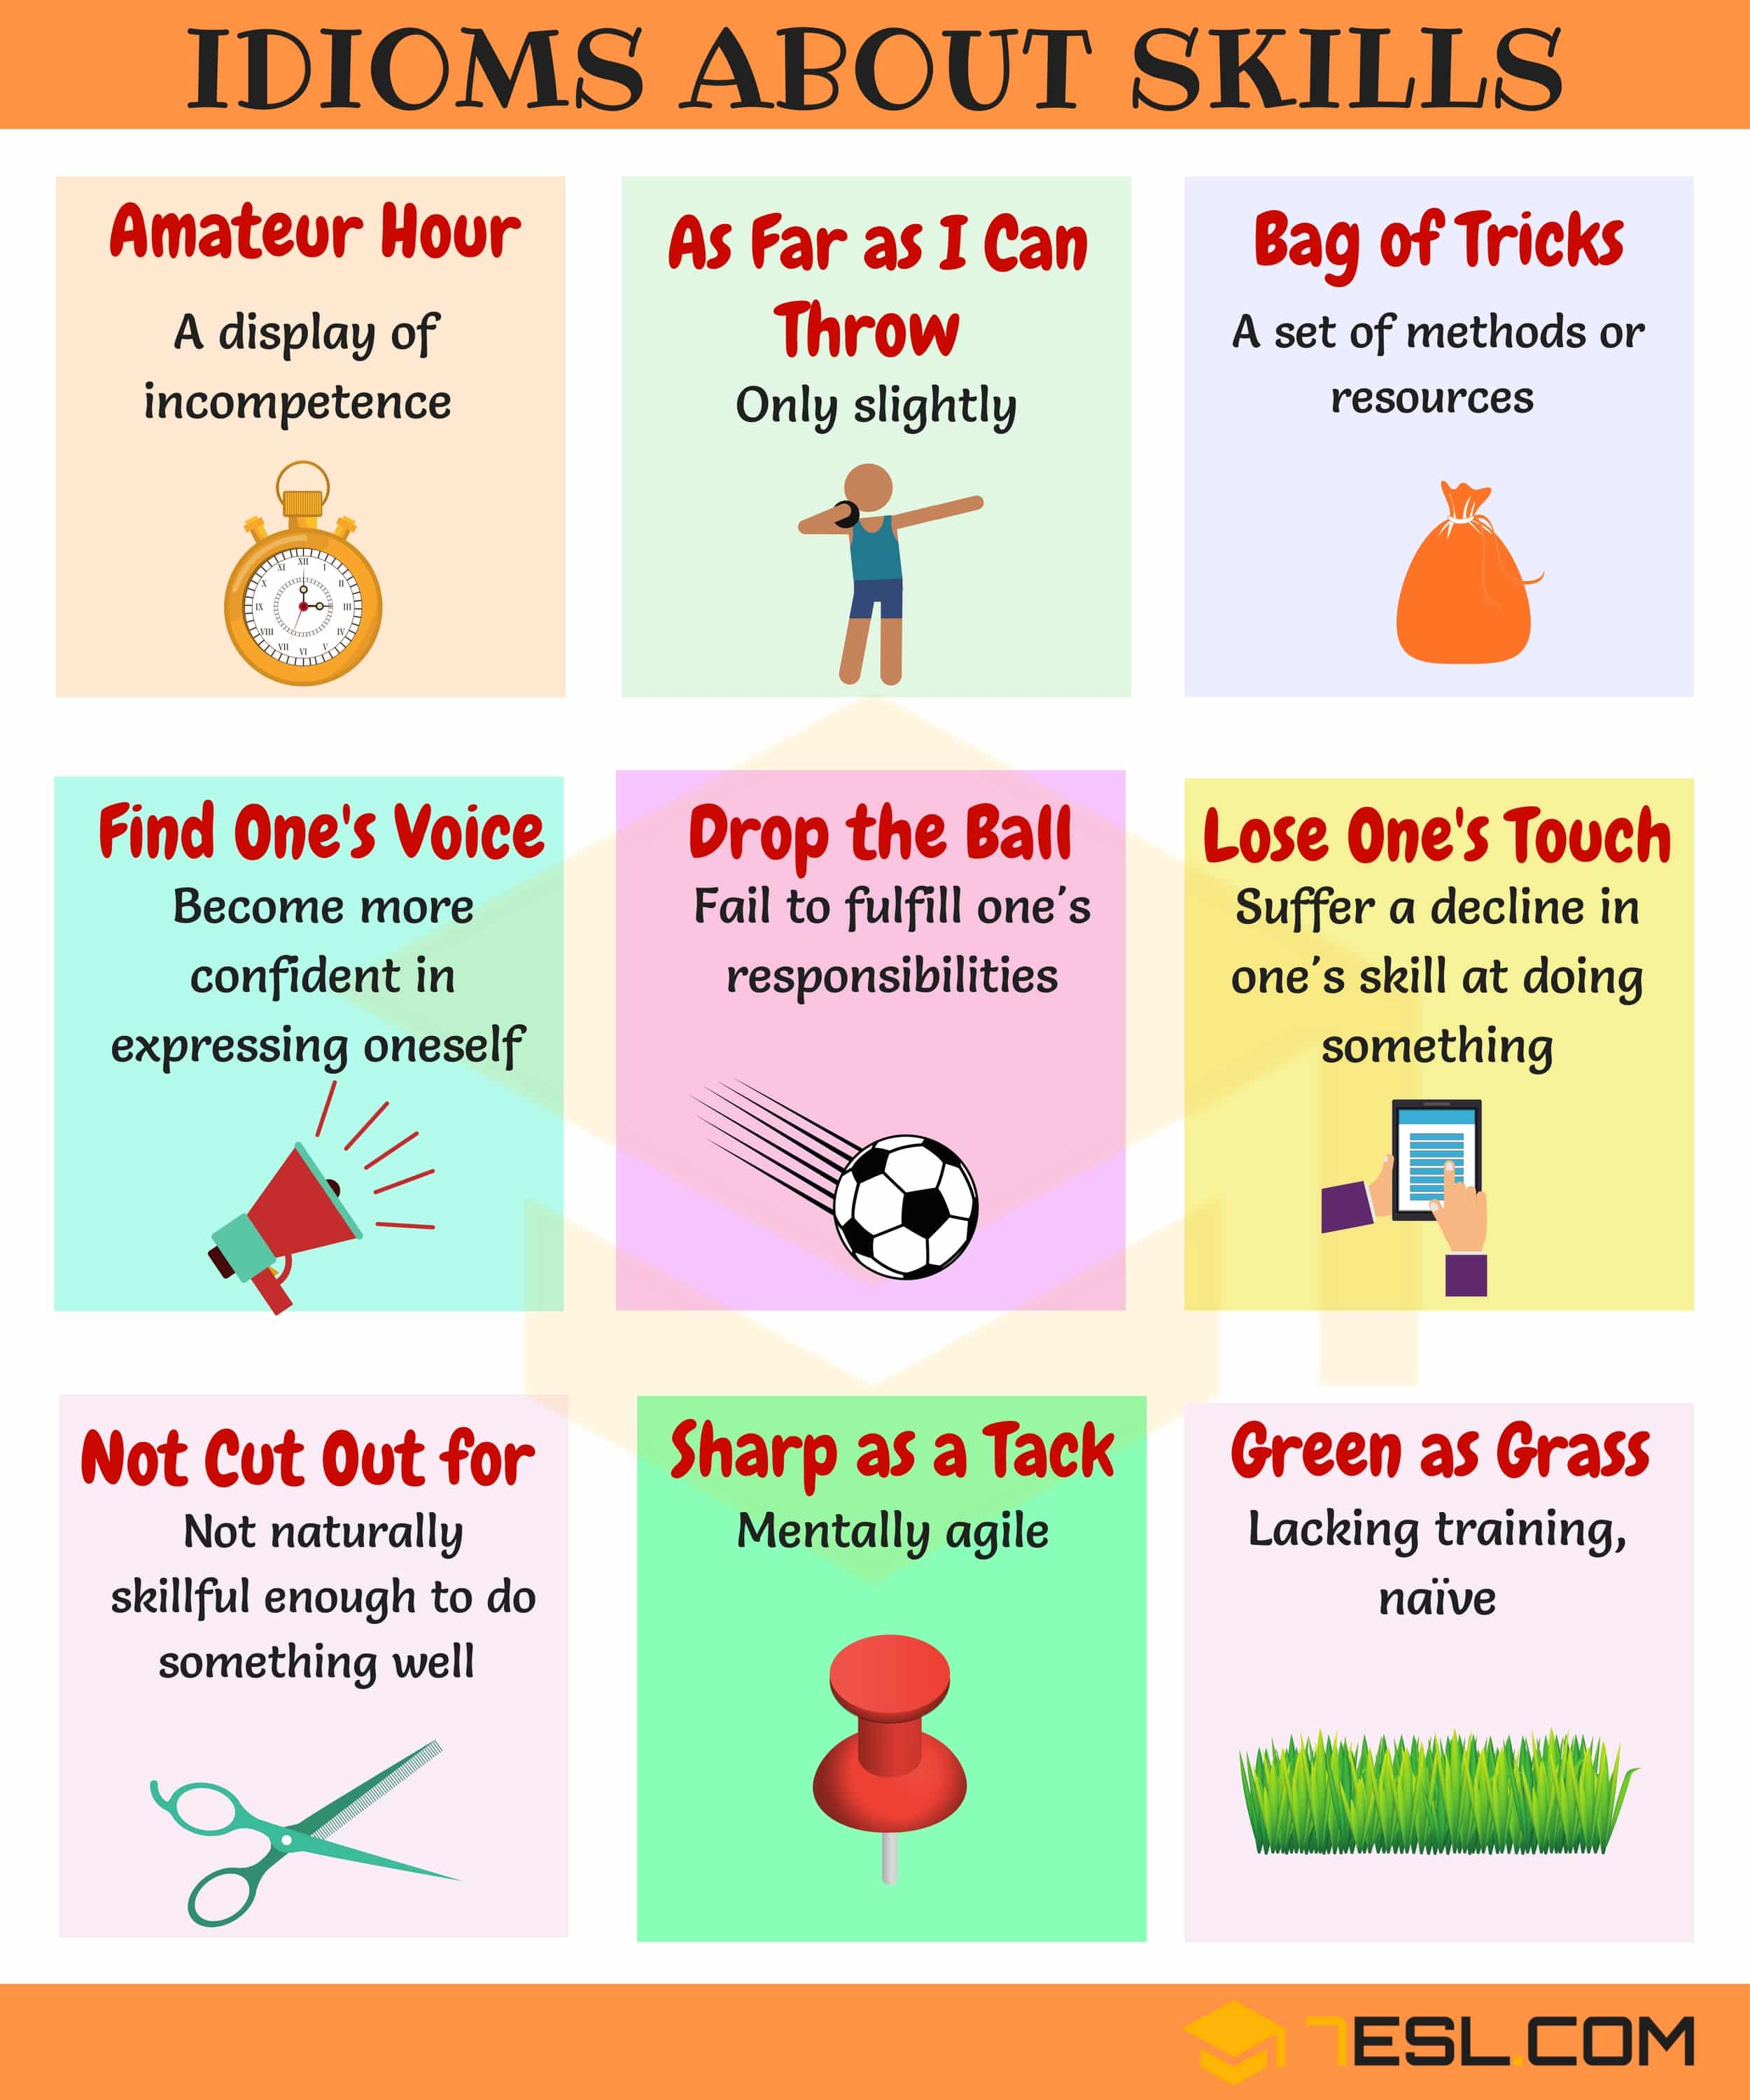 Skill Idioms 10 Useful Phrases Amp Idioms About Skills